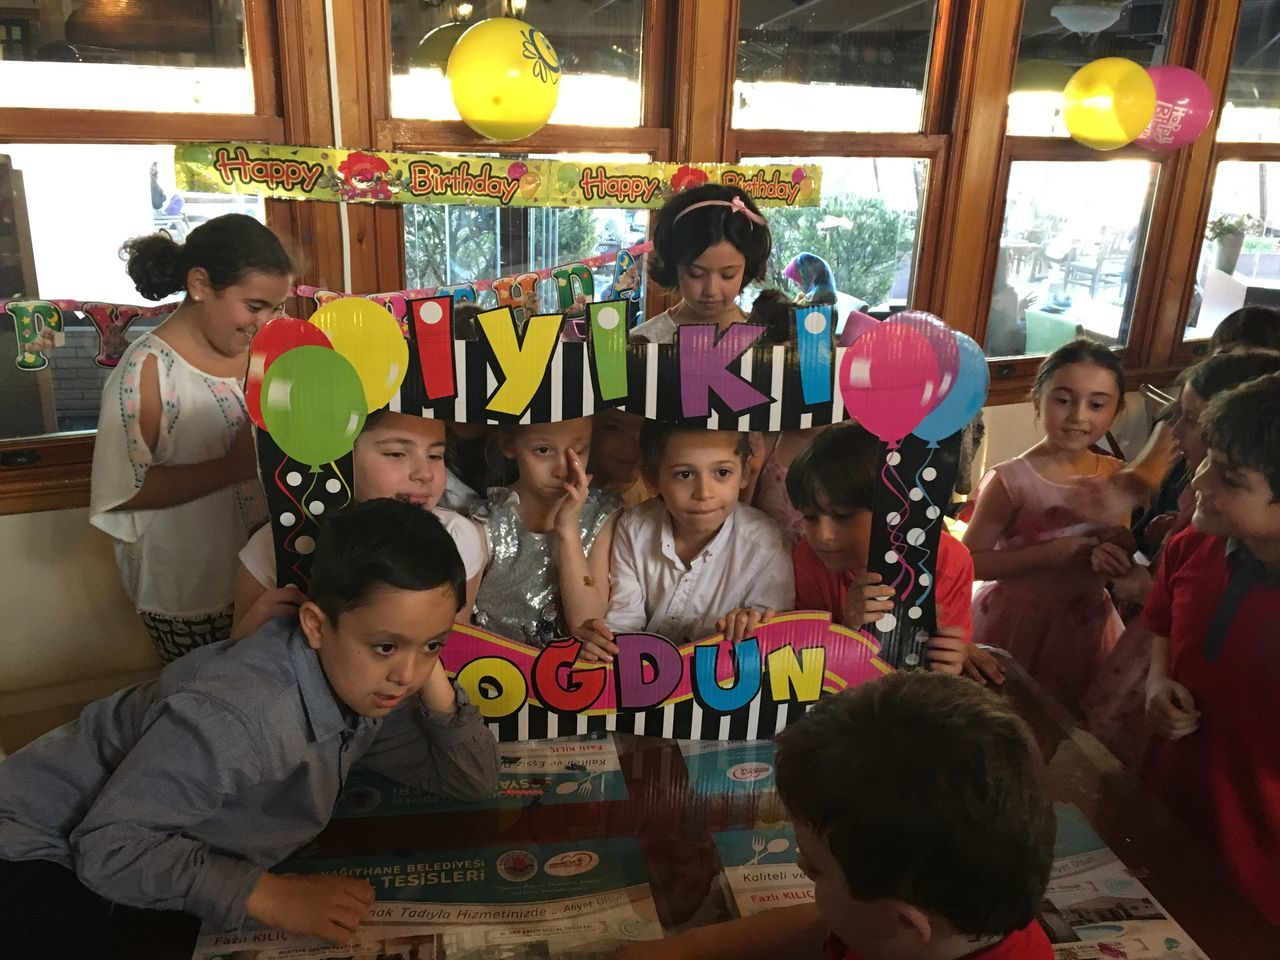 Aslı Aslantürk Birtdayparty Birthday Party Doğum Günü Enjoyment Friendship Fun Iyikidogdun Mert Aslantürk Sister Toothy Smile